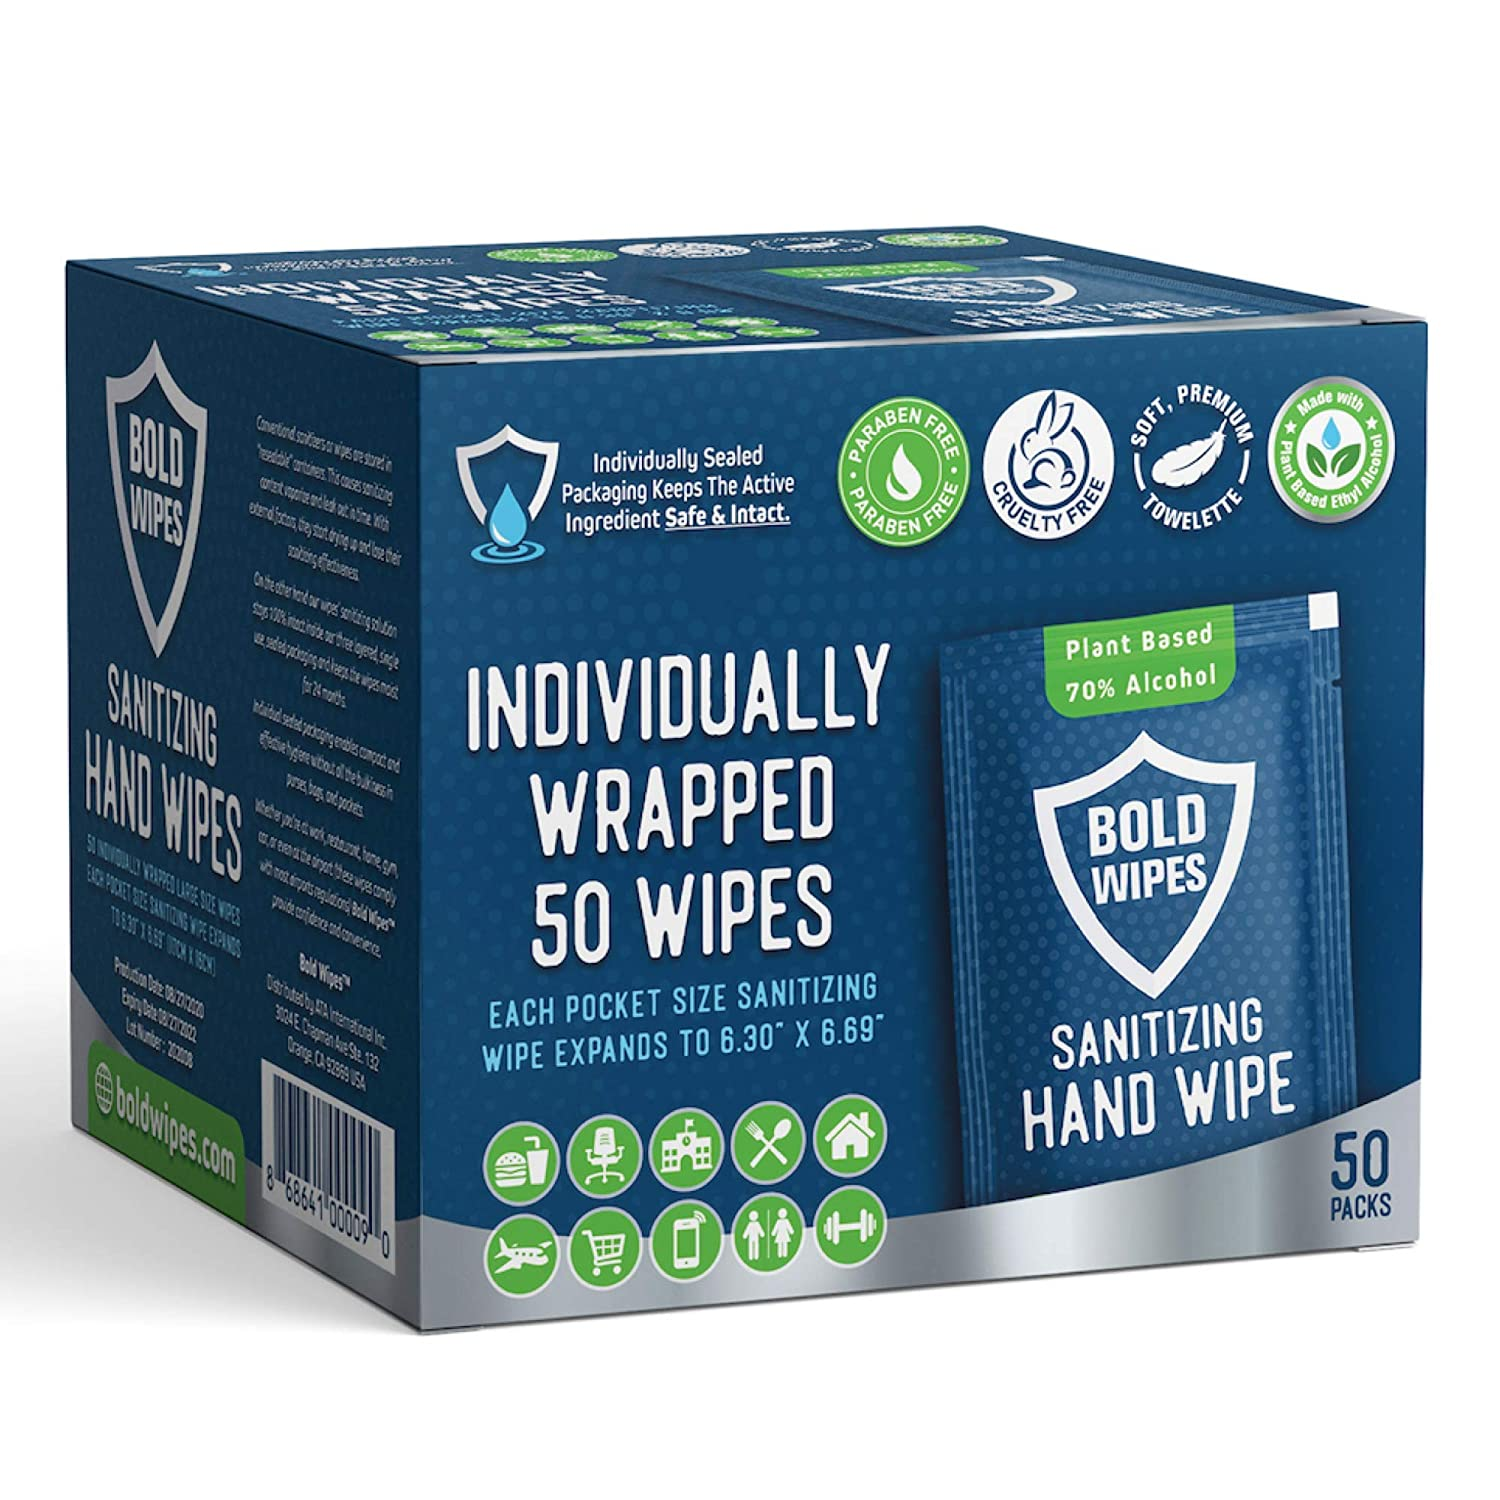 Bold Wipes LARGE Premium Hand Sanitizing Wipes Individually Wrapped Antibacterial Hand Sanitizer Wipes Large Size for Gym, Travel, Home, Exercise, Office and Outdoor Use